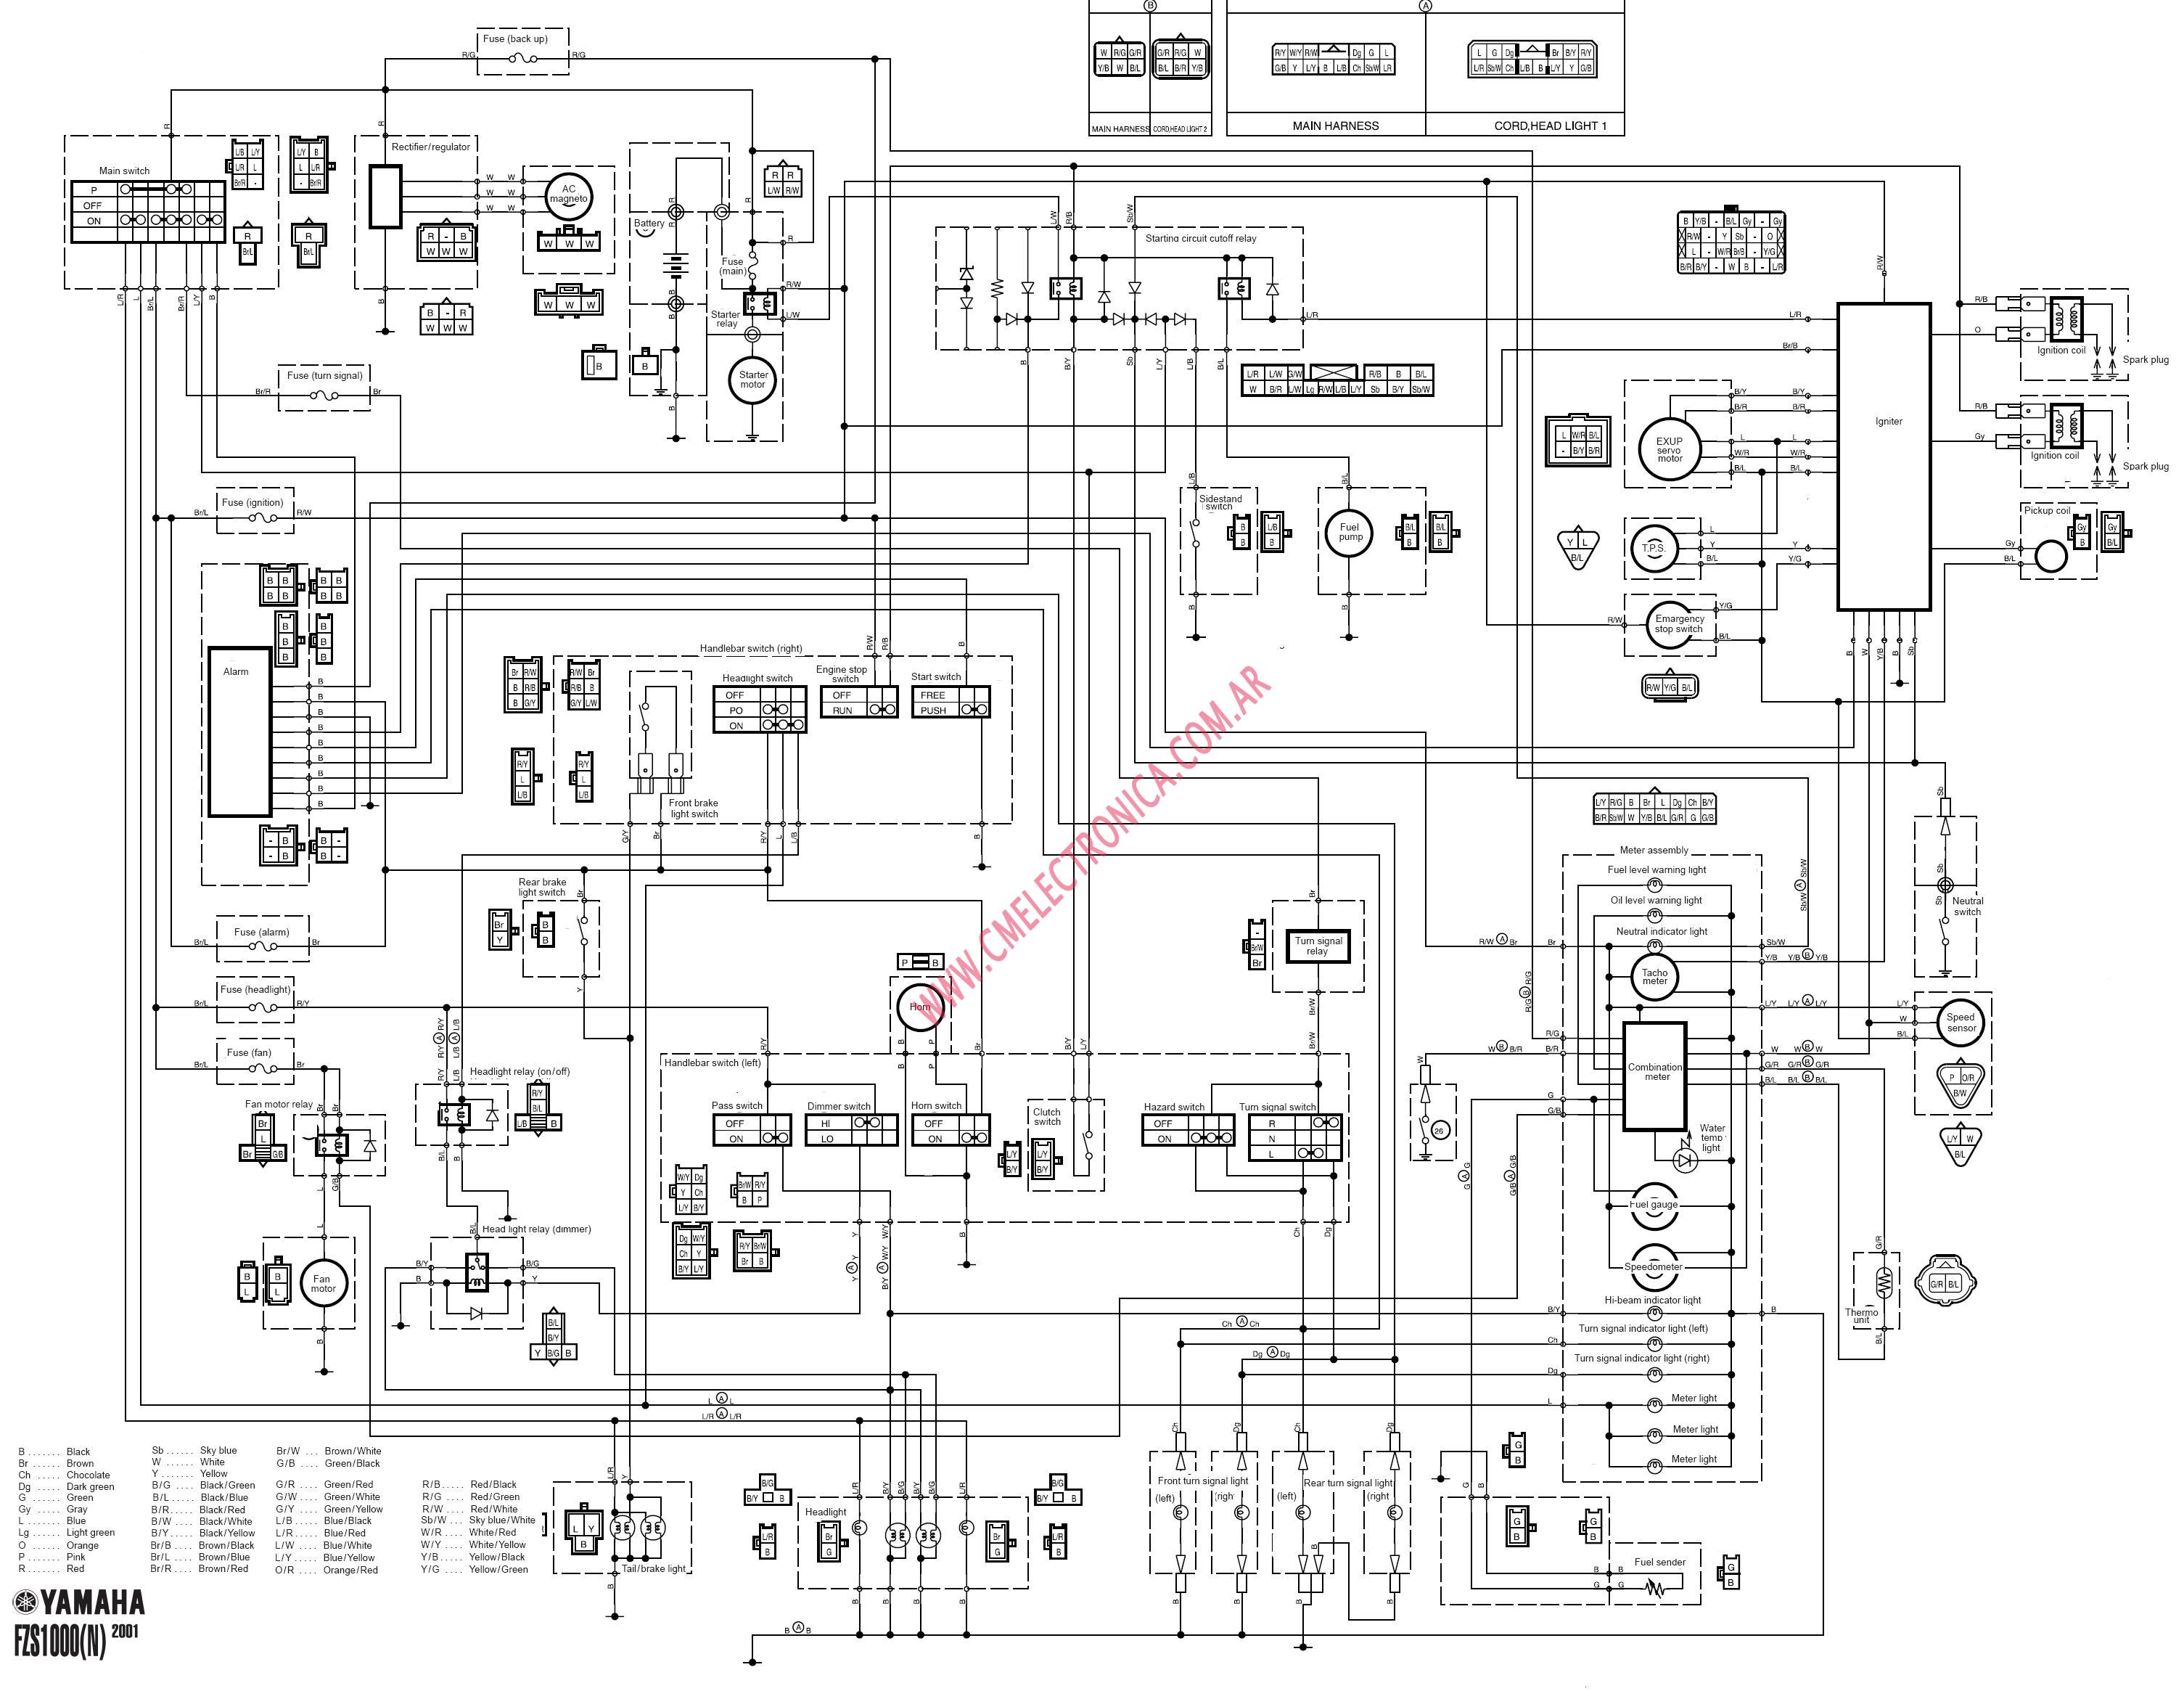 Yamaha Fzr600 Wiring Diagram Page 3 And Schematics 1996 Fzr 600 Schematic Diagrams Source Further Fz750 Likewise Ce 16828 1 Also 44087 98y Additionally Moreover